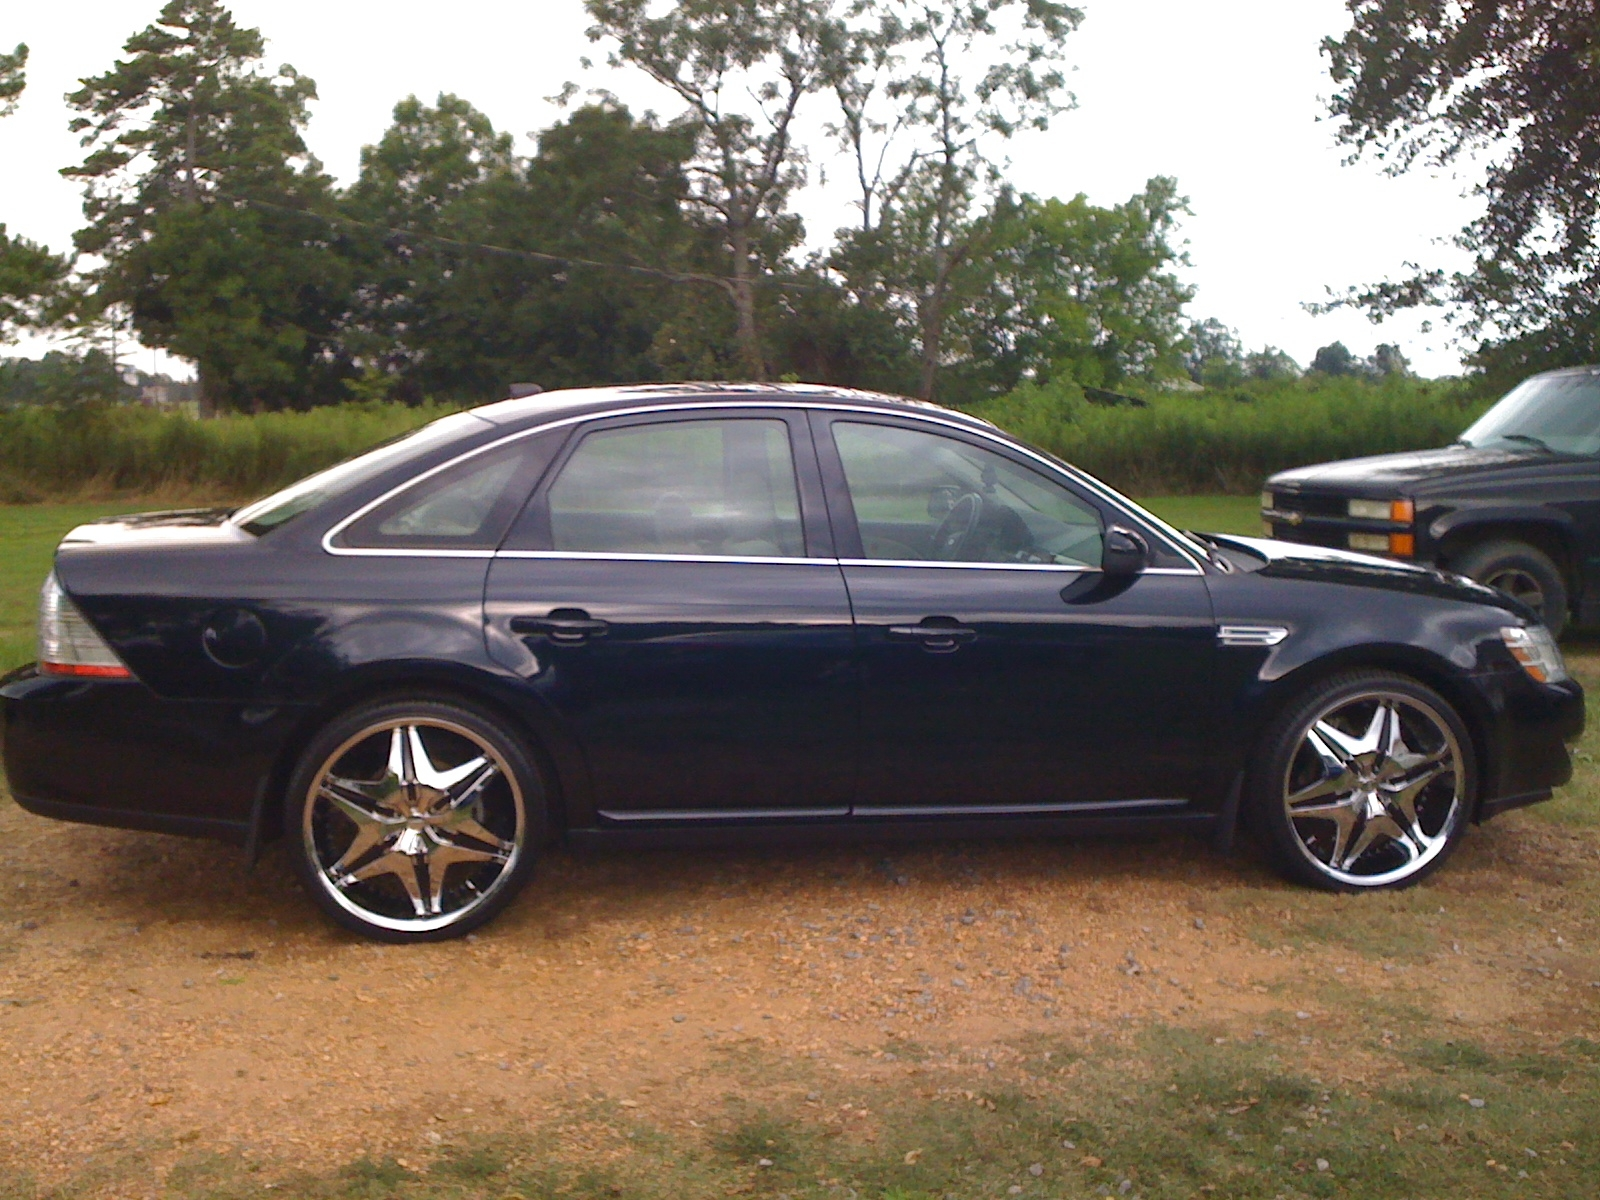 Ford Fusion Body Kit >> TOPDOGG2G 2008 Ford Taurus Specs, Photos, Modification Info at CarDomain